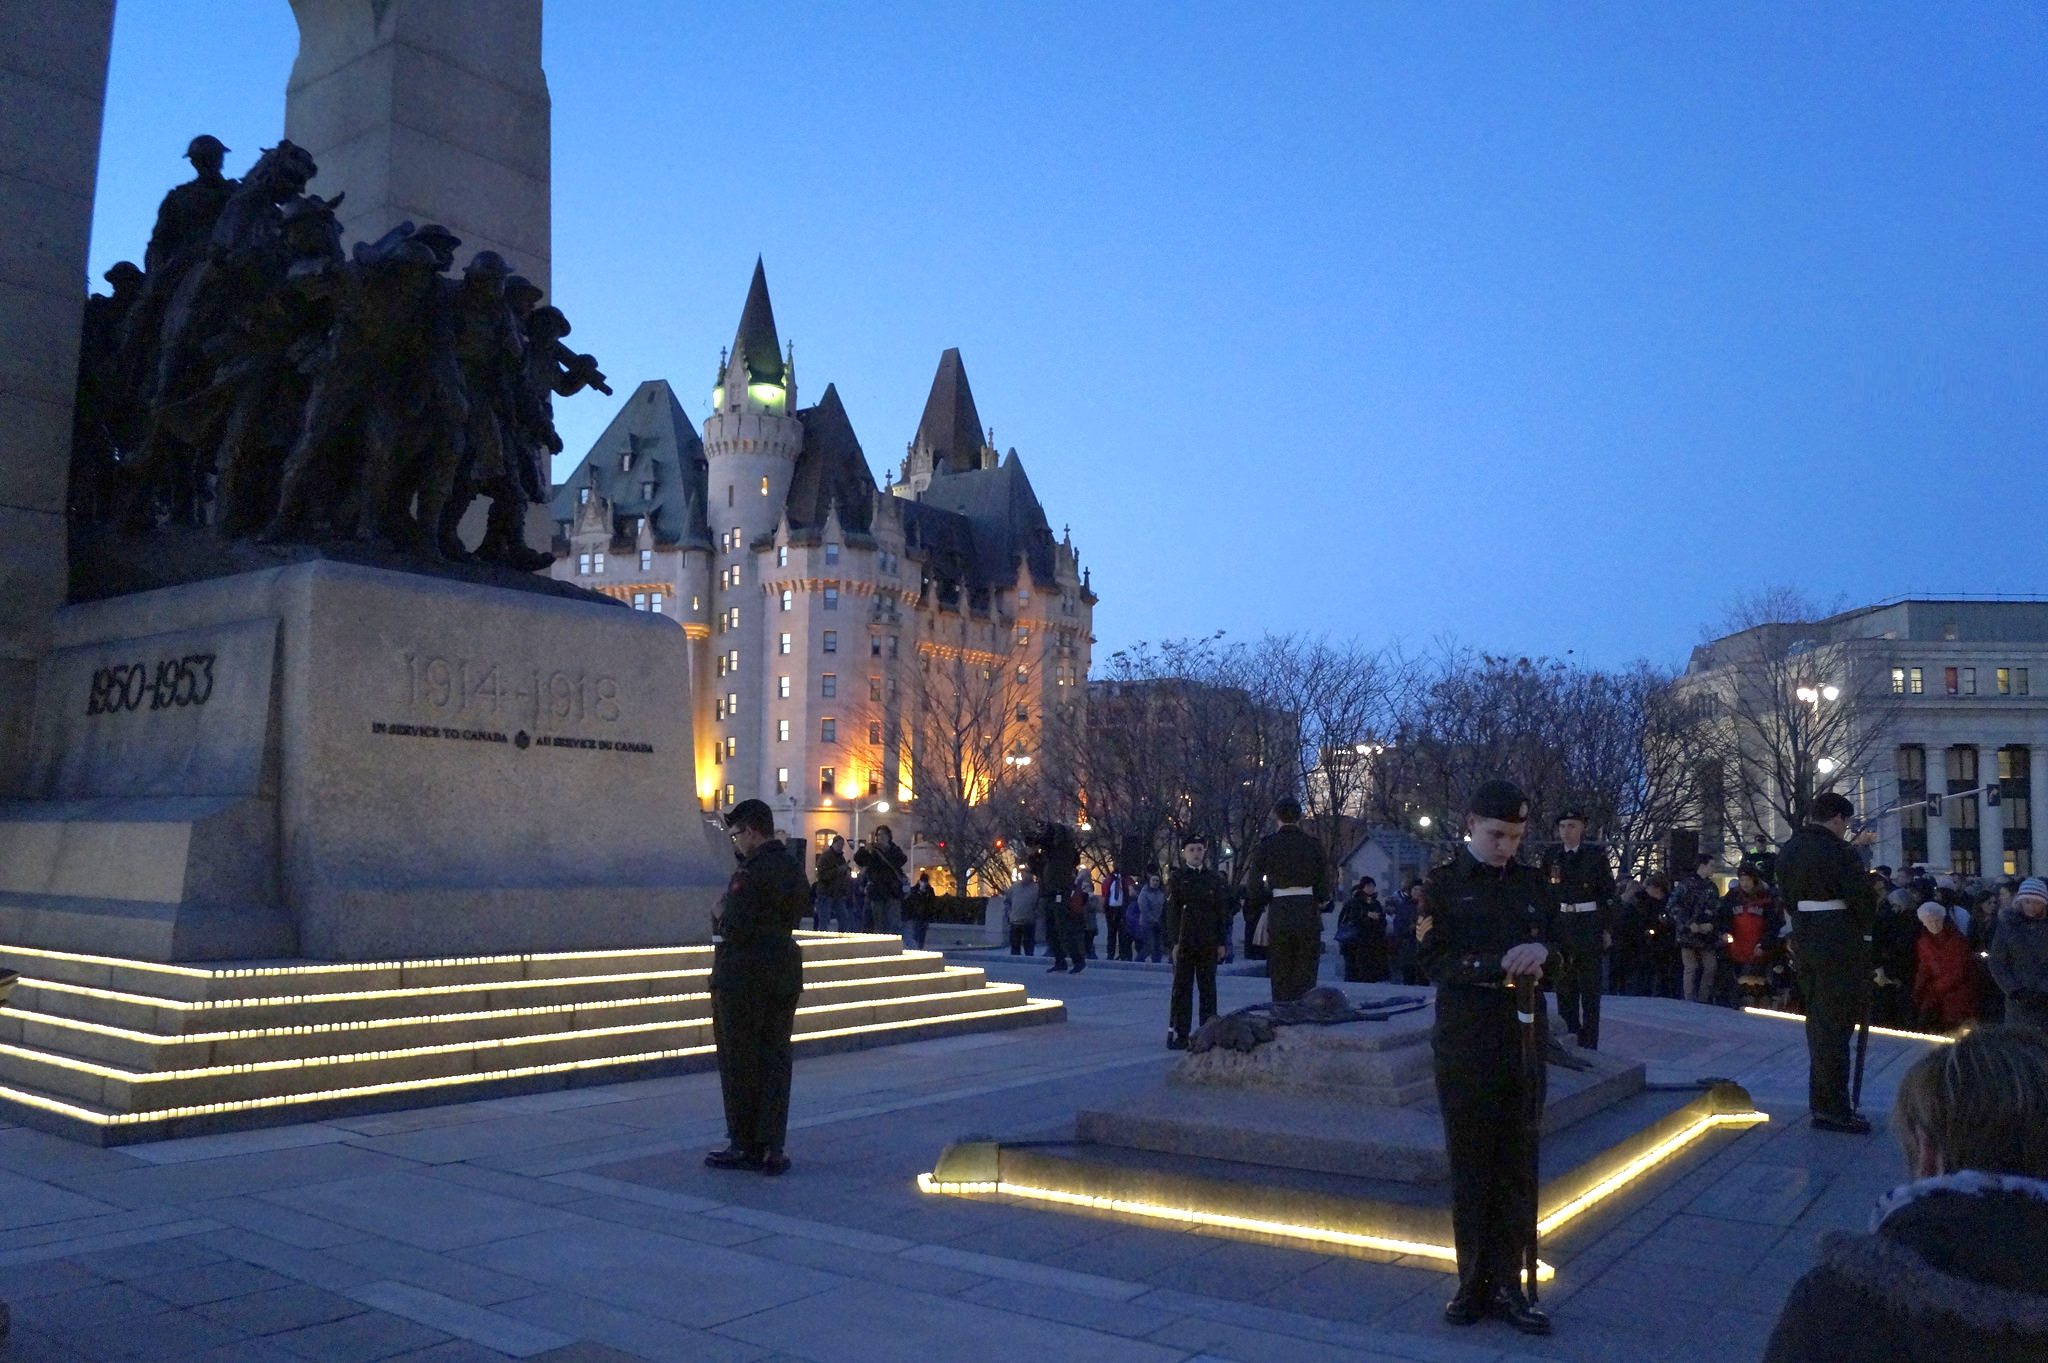 On a beautiful clear evening in Ottawa, hundreds gathered for the annual Army Cadet Battle of Vimy Commemoration candlelight ceremony at the National War Memorial on April 8, 2017. (michel asboth)